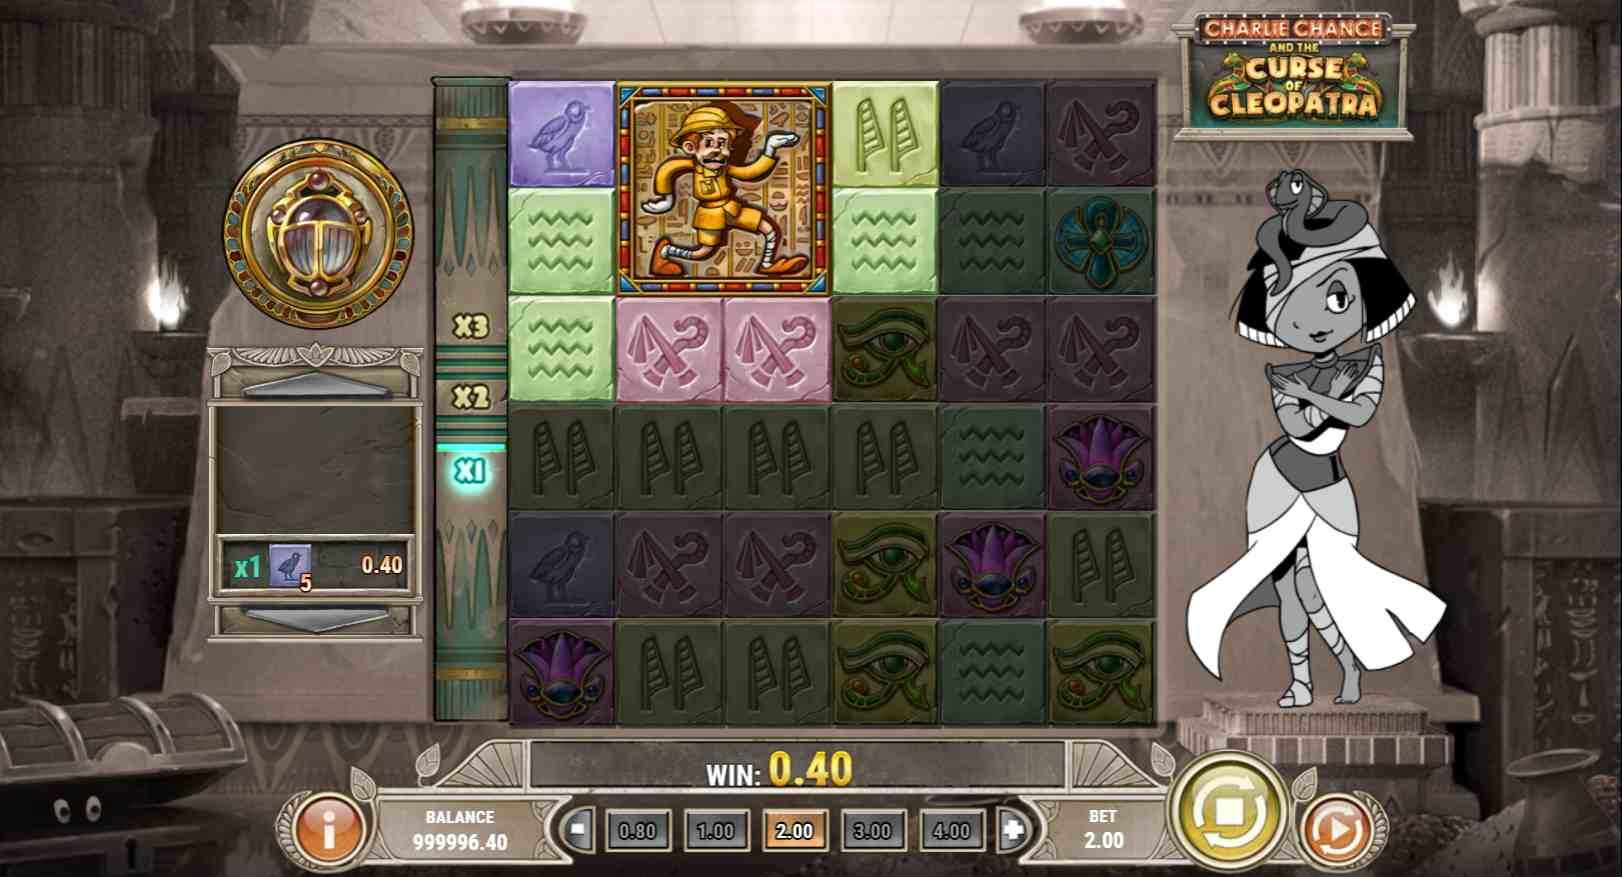 Charlie Chance and the Curse of Cleopatra Gameplay 2